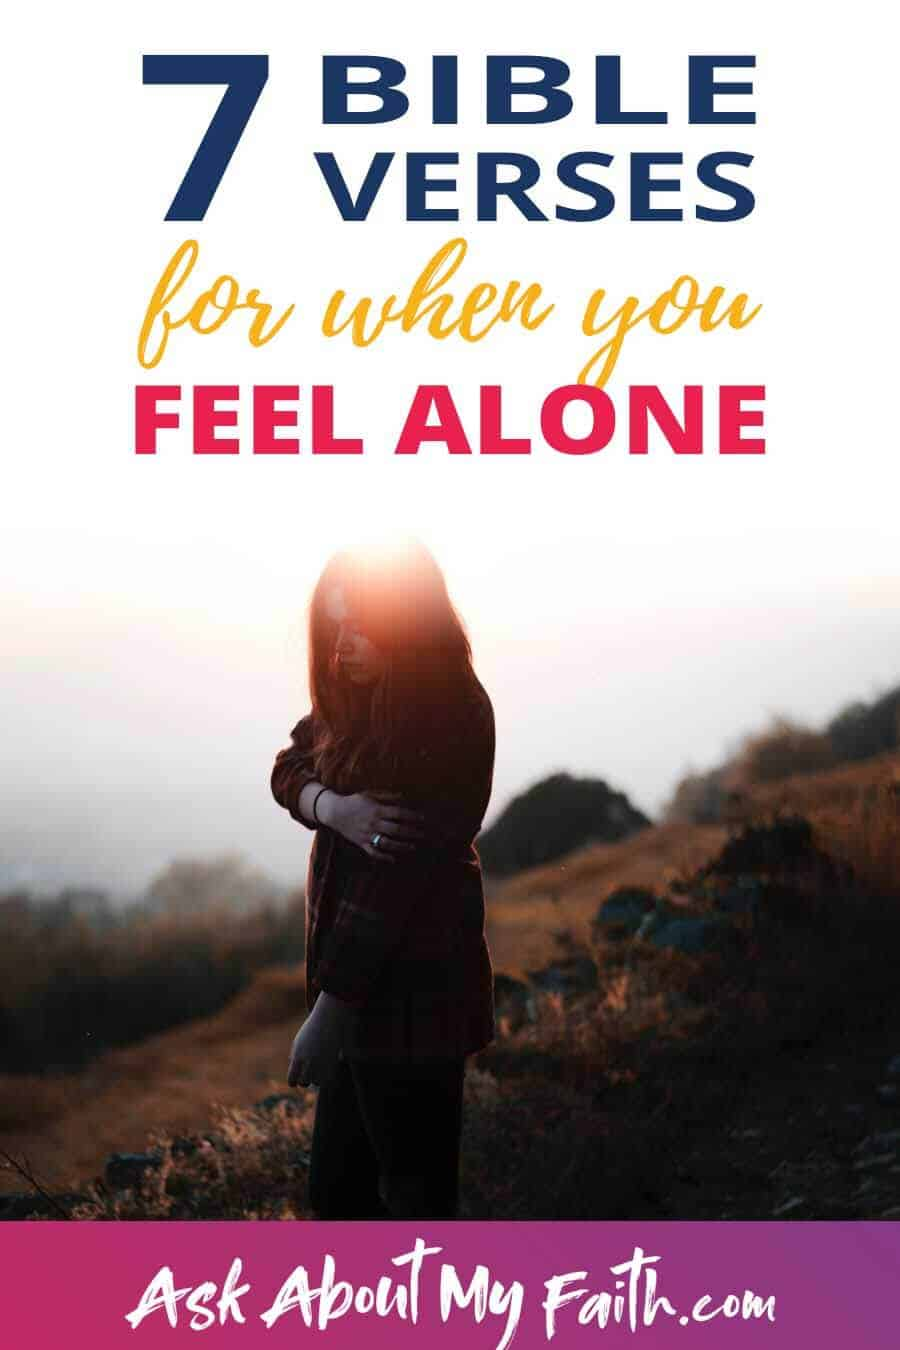 Bible Verses for when you feel alone | loneliness | mental health | Christianity | Christian woman and growing faith